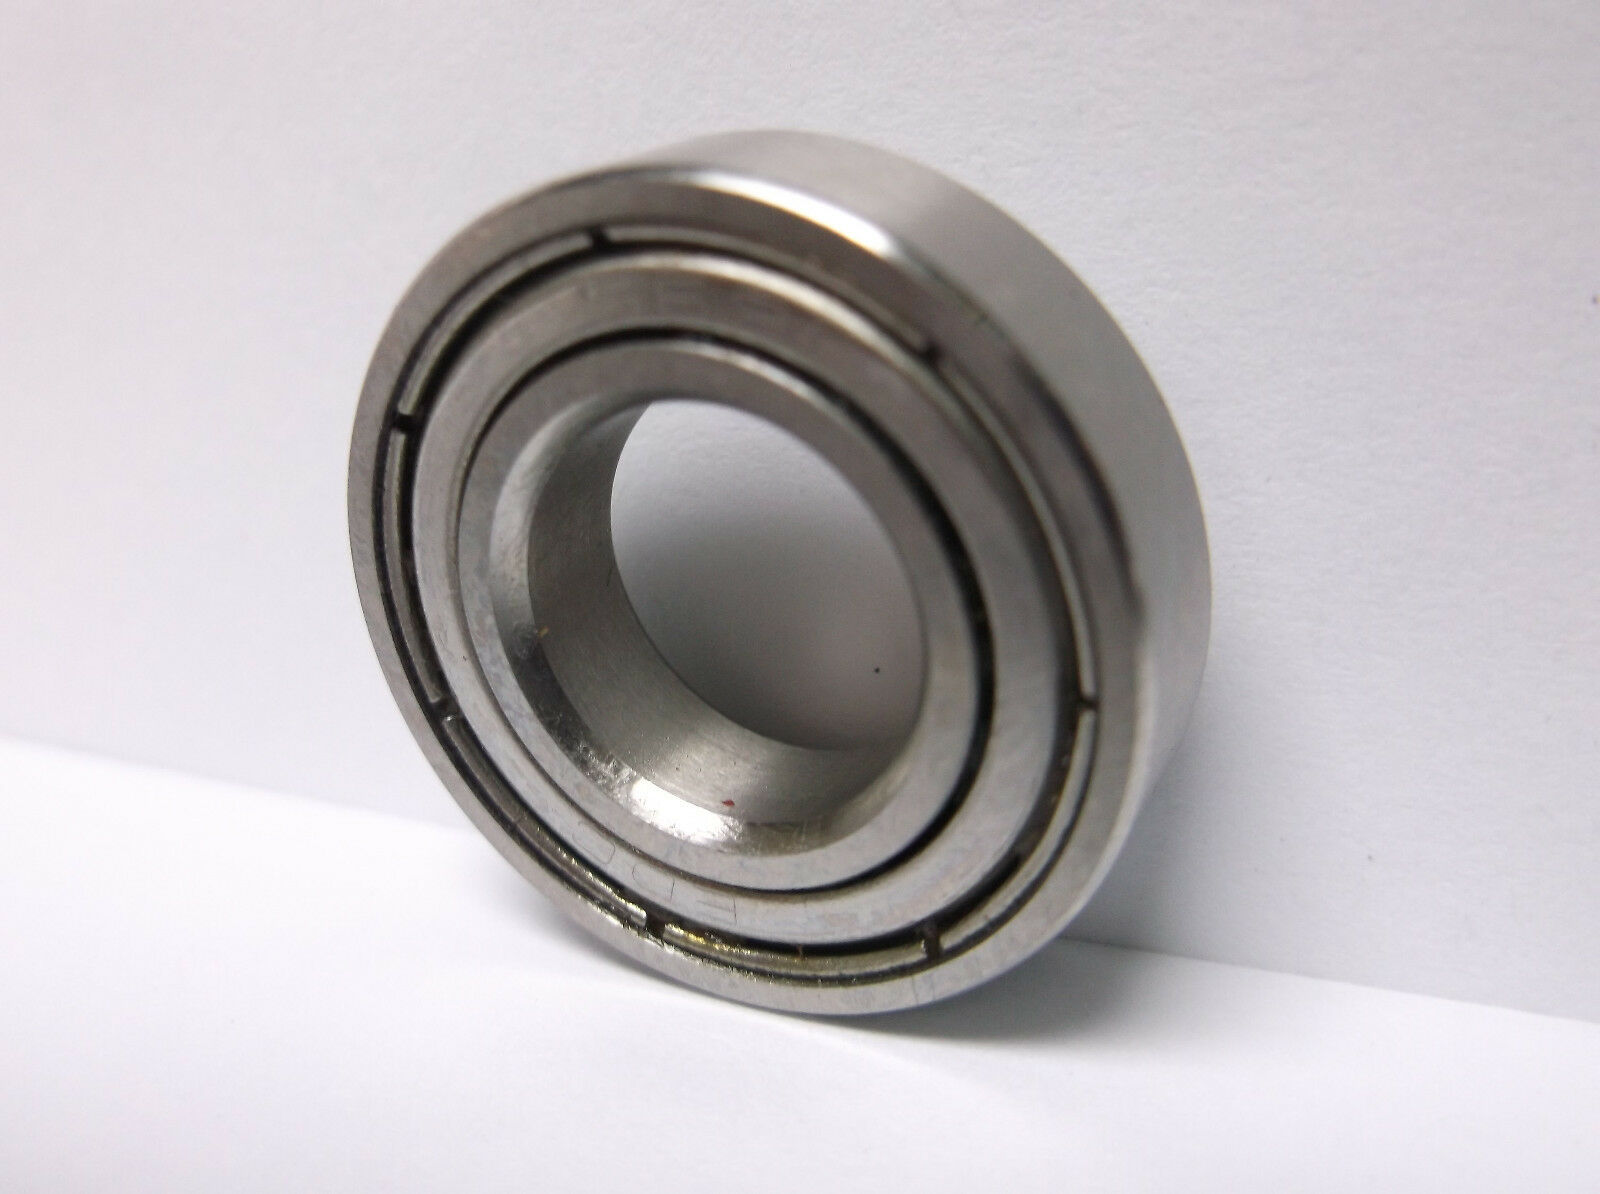 NEW ALUTECNOS REEL PART 13 Albacore 30 50 50 50 80lbs 302S 30W2S Ball Bearing  A